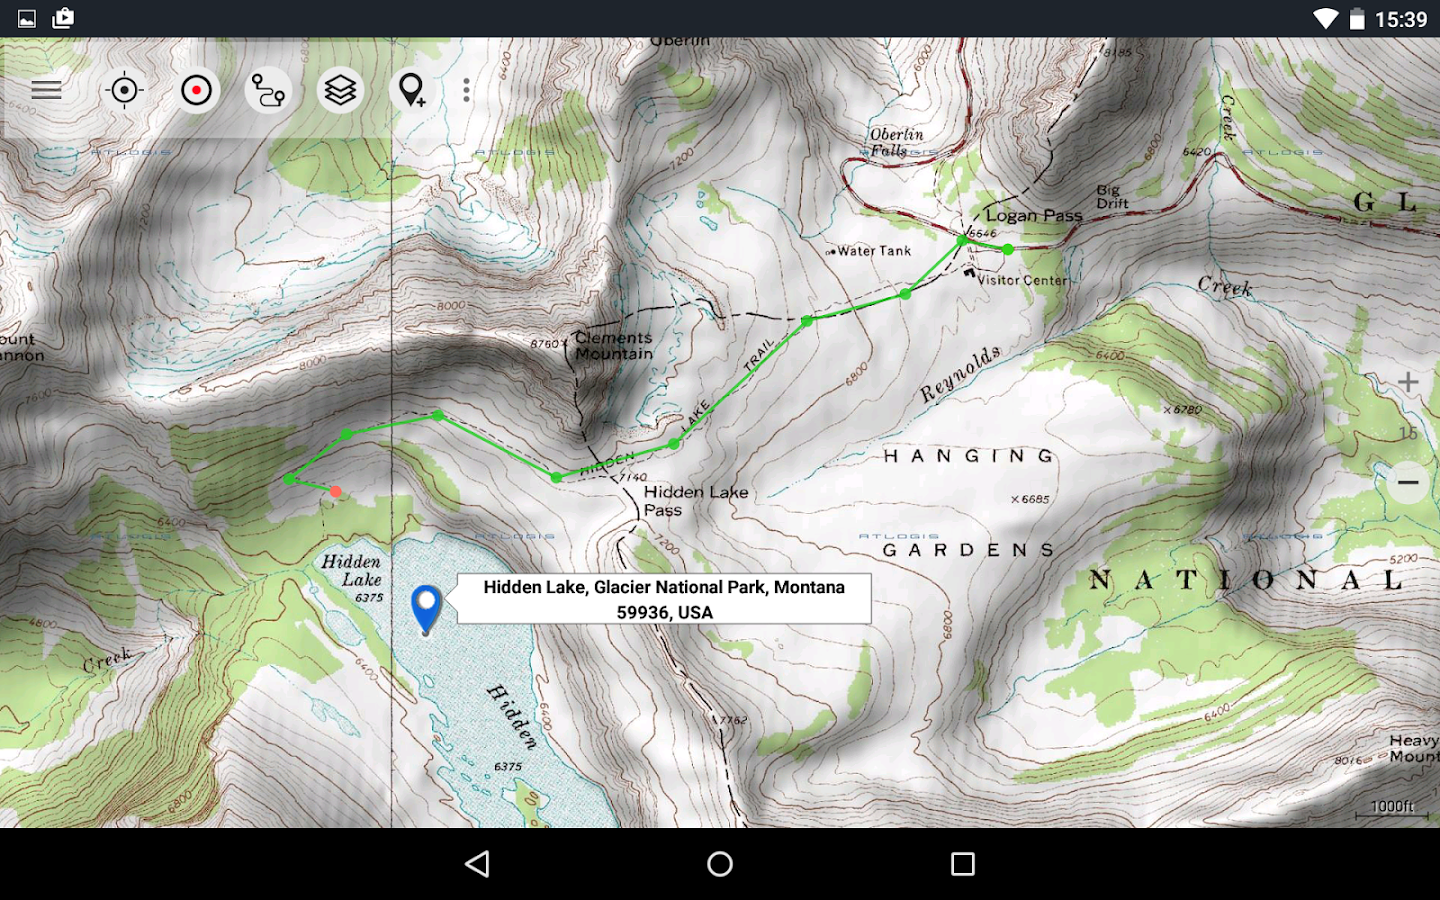 US Topo Maps Pro Android Apps On Google Play - Us topo maps for google earth